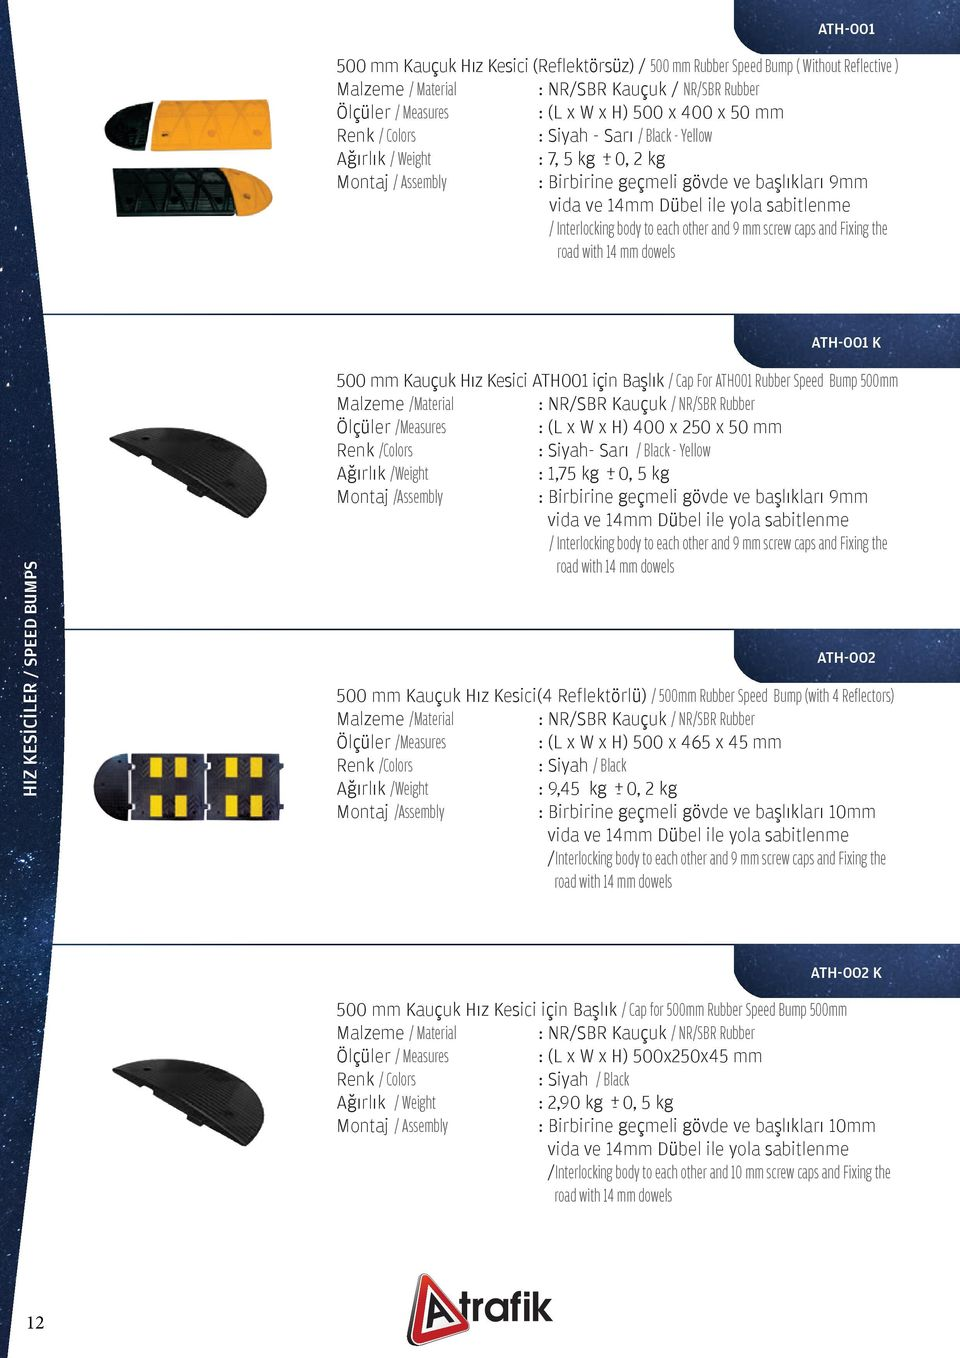 other and 9 mm screw caps and Fixing the road with 14 mm dowels ATH-001 K HIZ KESİCİLER / SPEED BUMPS 500 mm Kauçuk Hız Kesici ATH001 için Başlık / Cap For ATH001 Rubber Speed Bump 500mm Malzeme